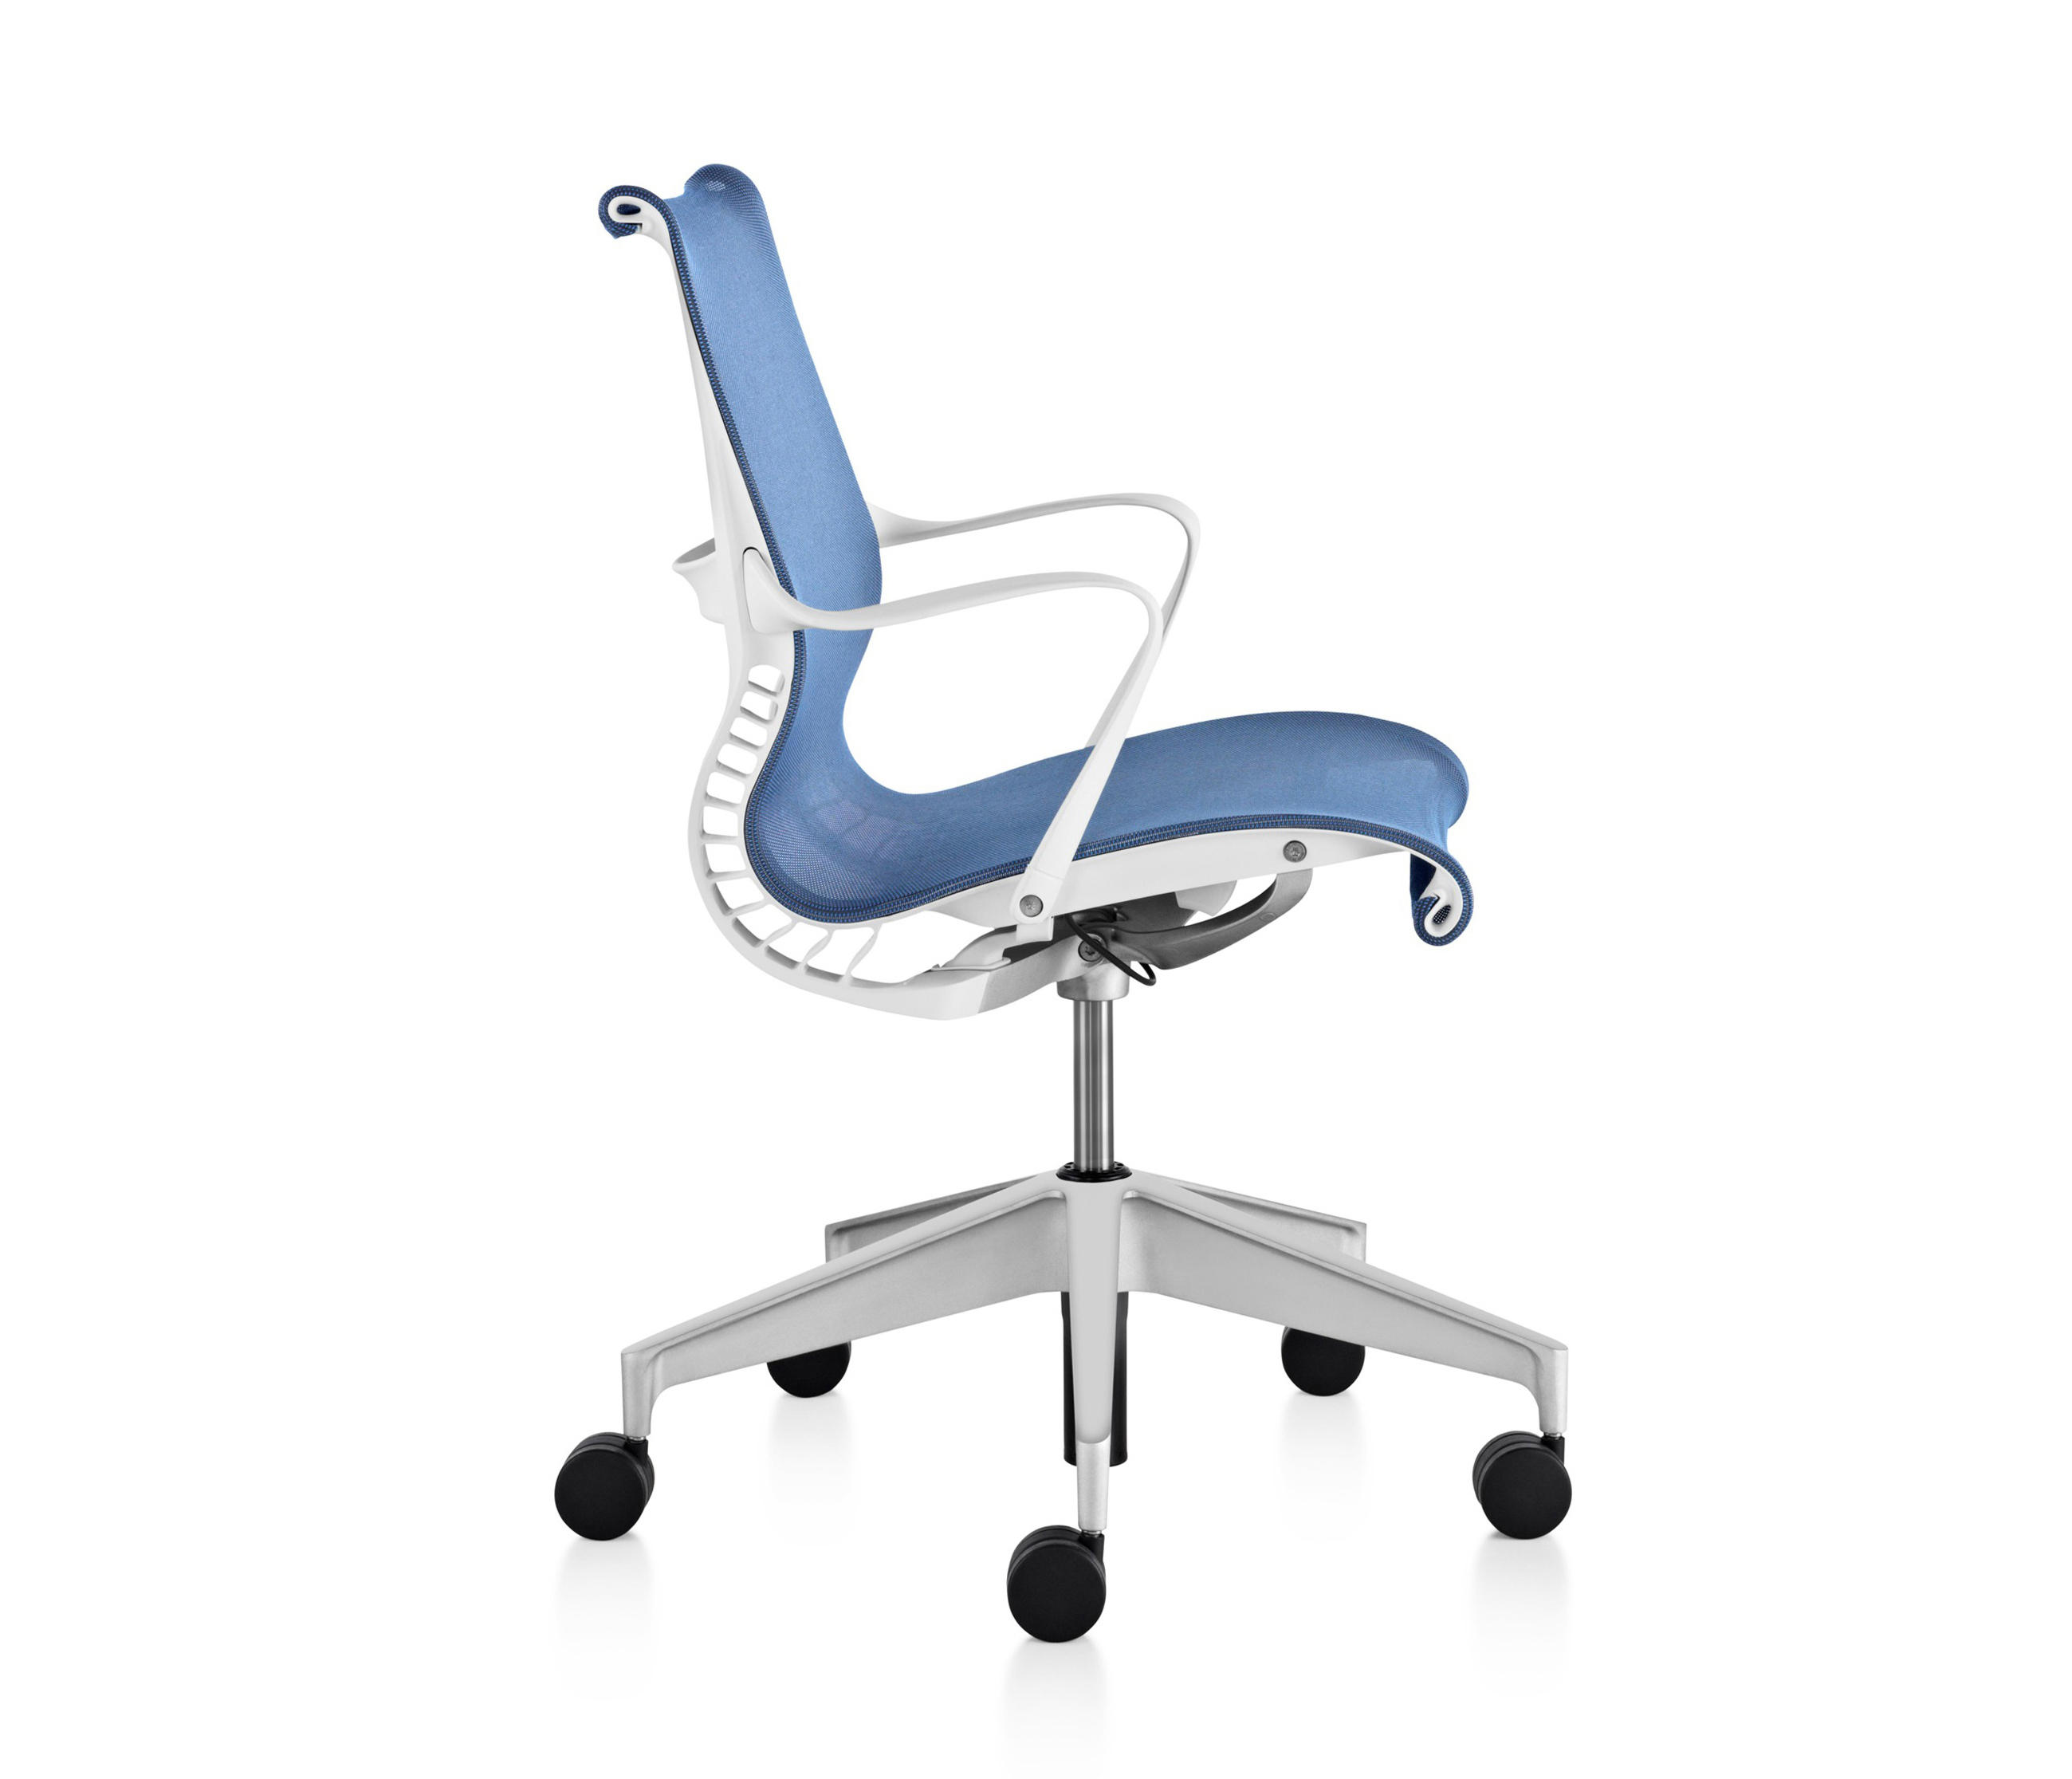 setu chair chairs from herman miller architonic